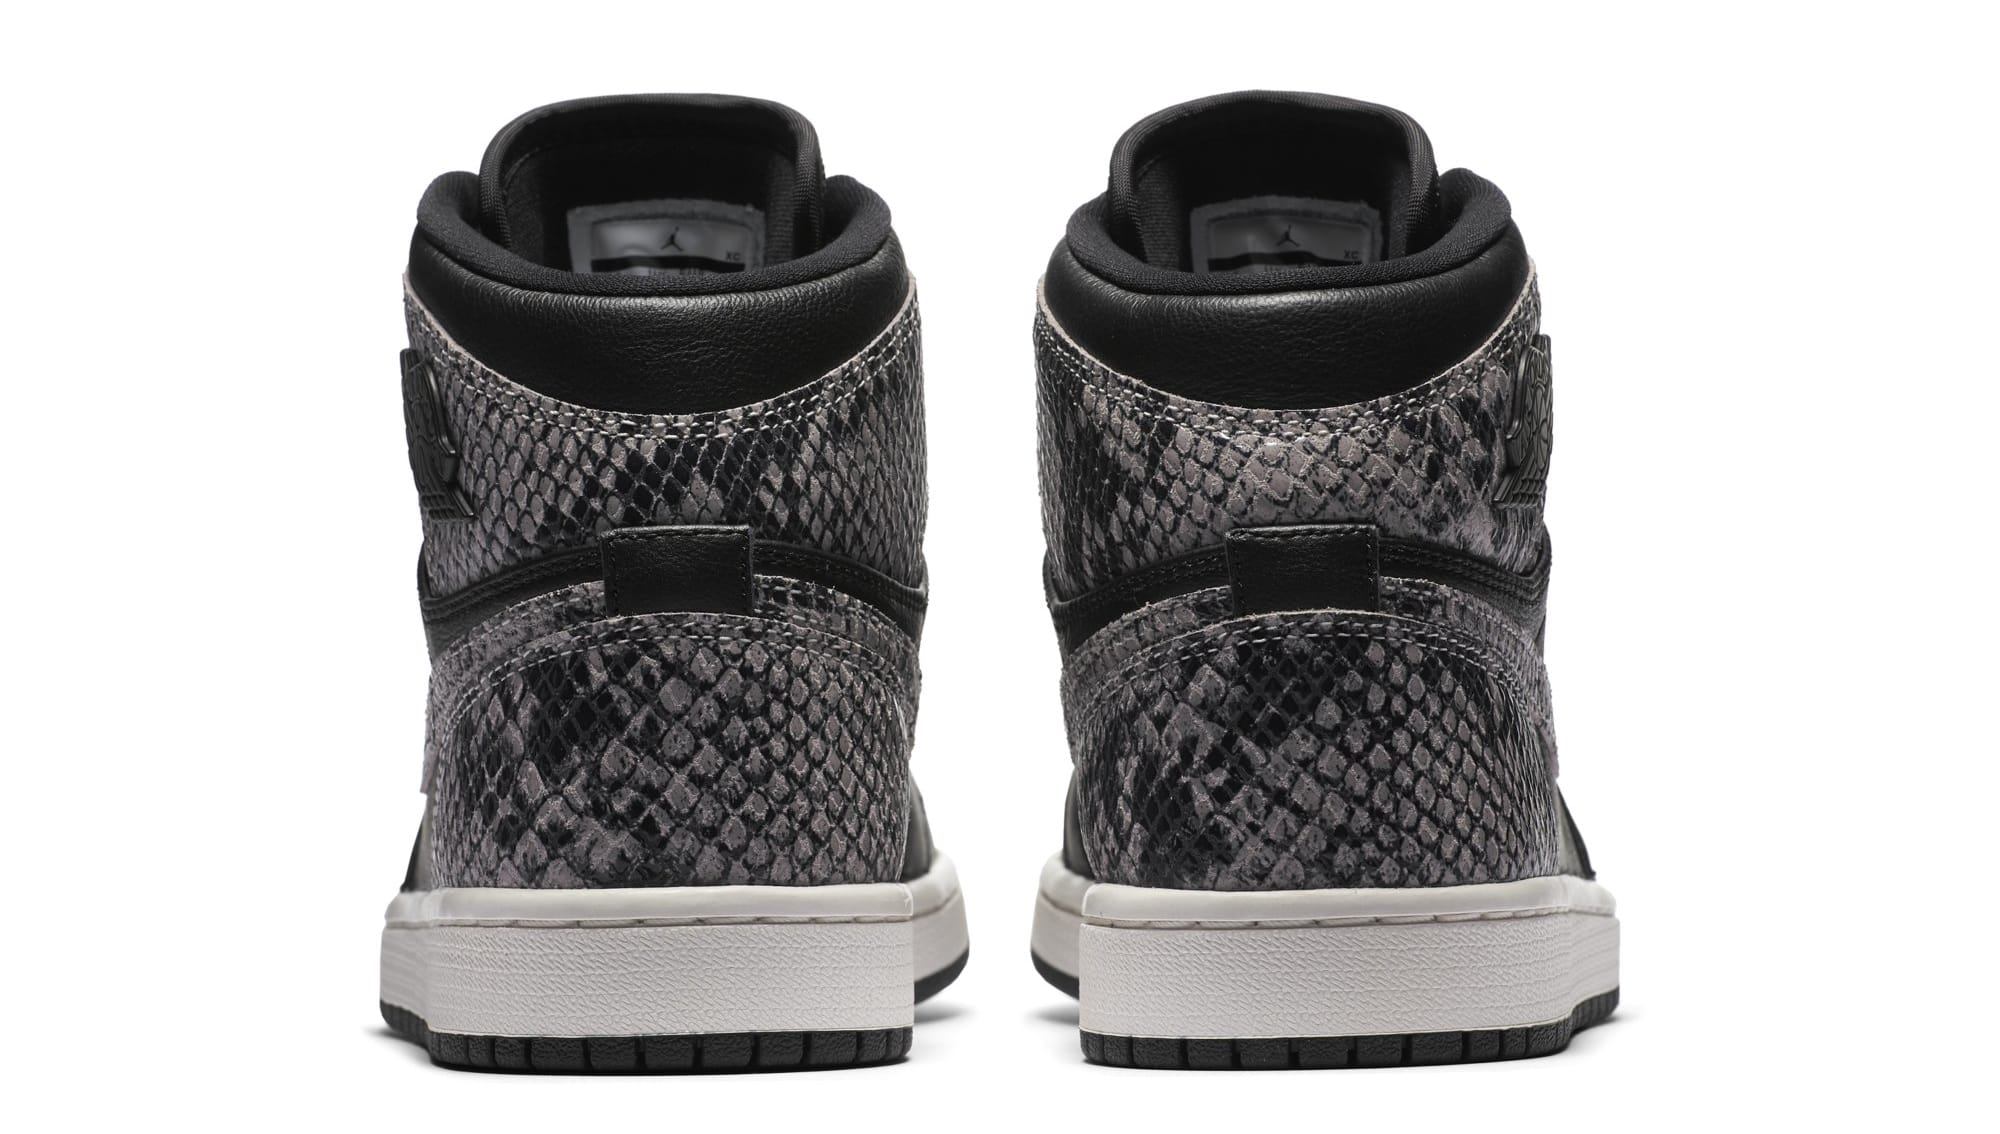 Air Jordan 1 Retro High Premium Women's Snake 'Black/Phantom' AH7389-014 (Heel)